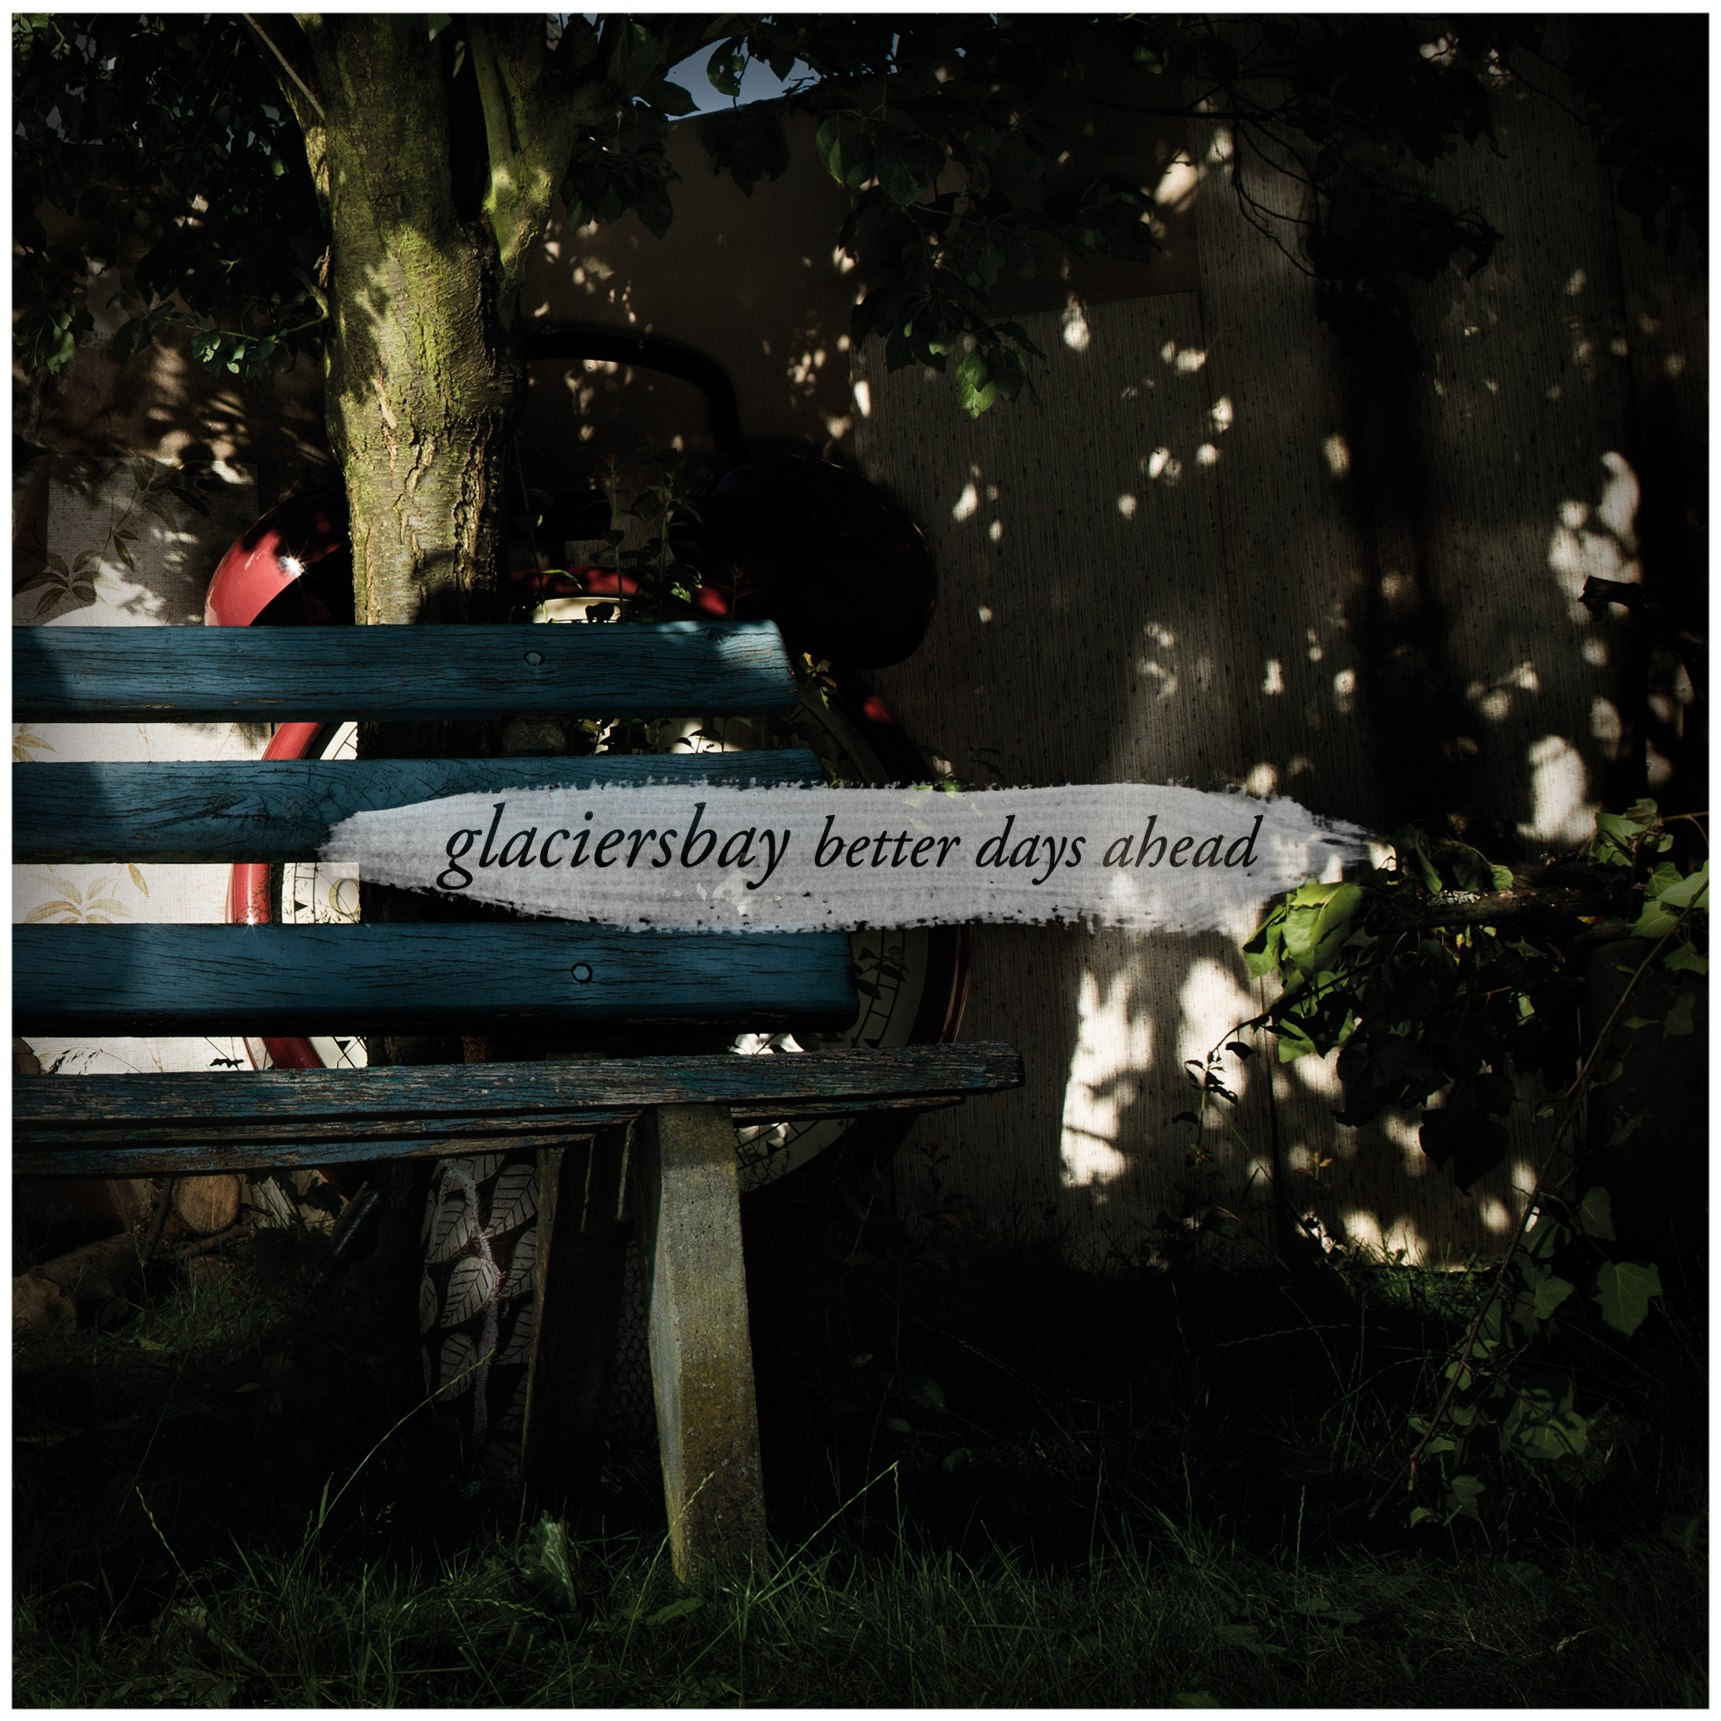 Glaciersbay - Better Days Ahead [EP] (2012)